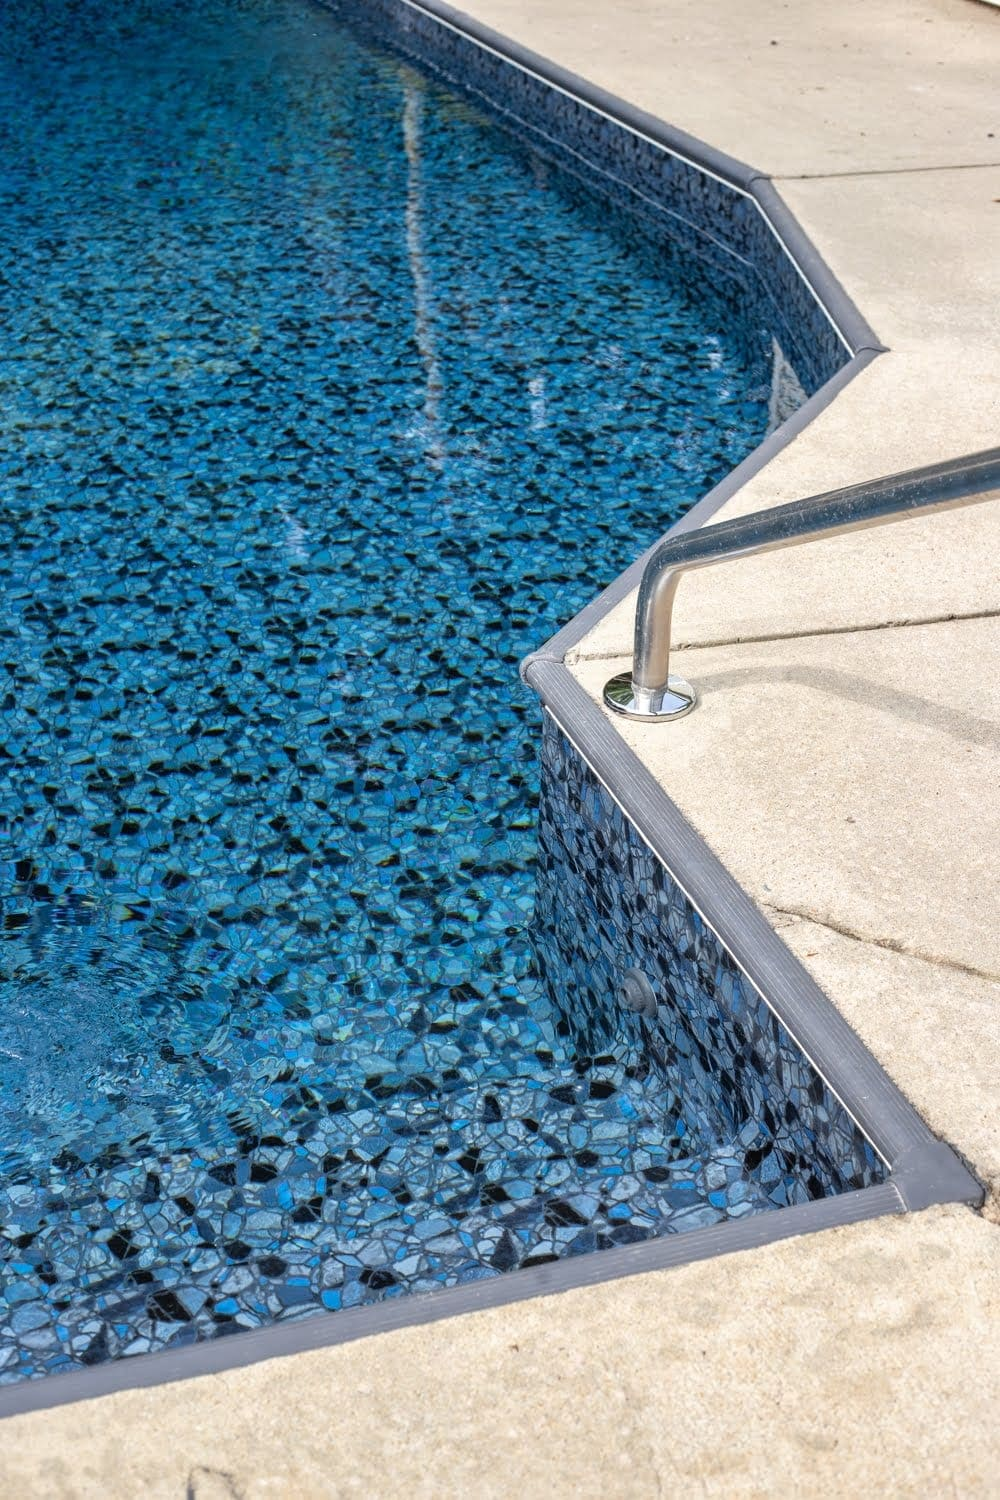 Swimming Pool Liner Makeover Reveal | TrueStone Collection - Obsidian from GLI Pool Products and charcoal gray painted coping strip